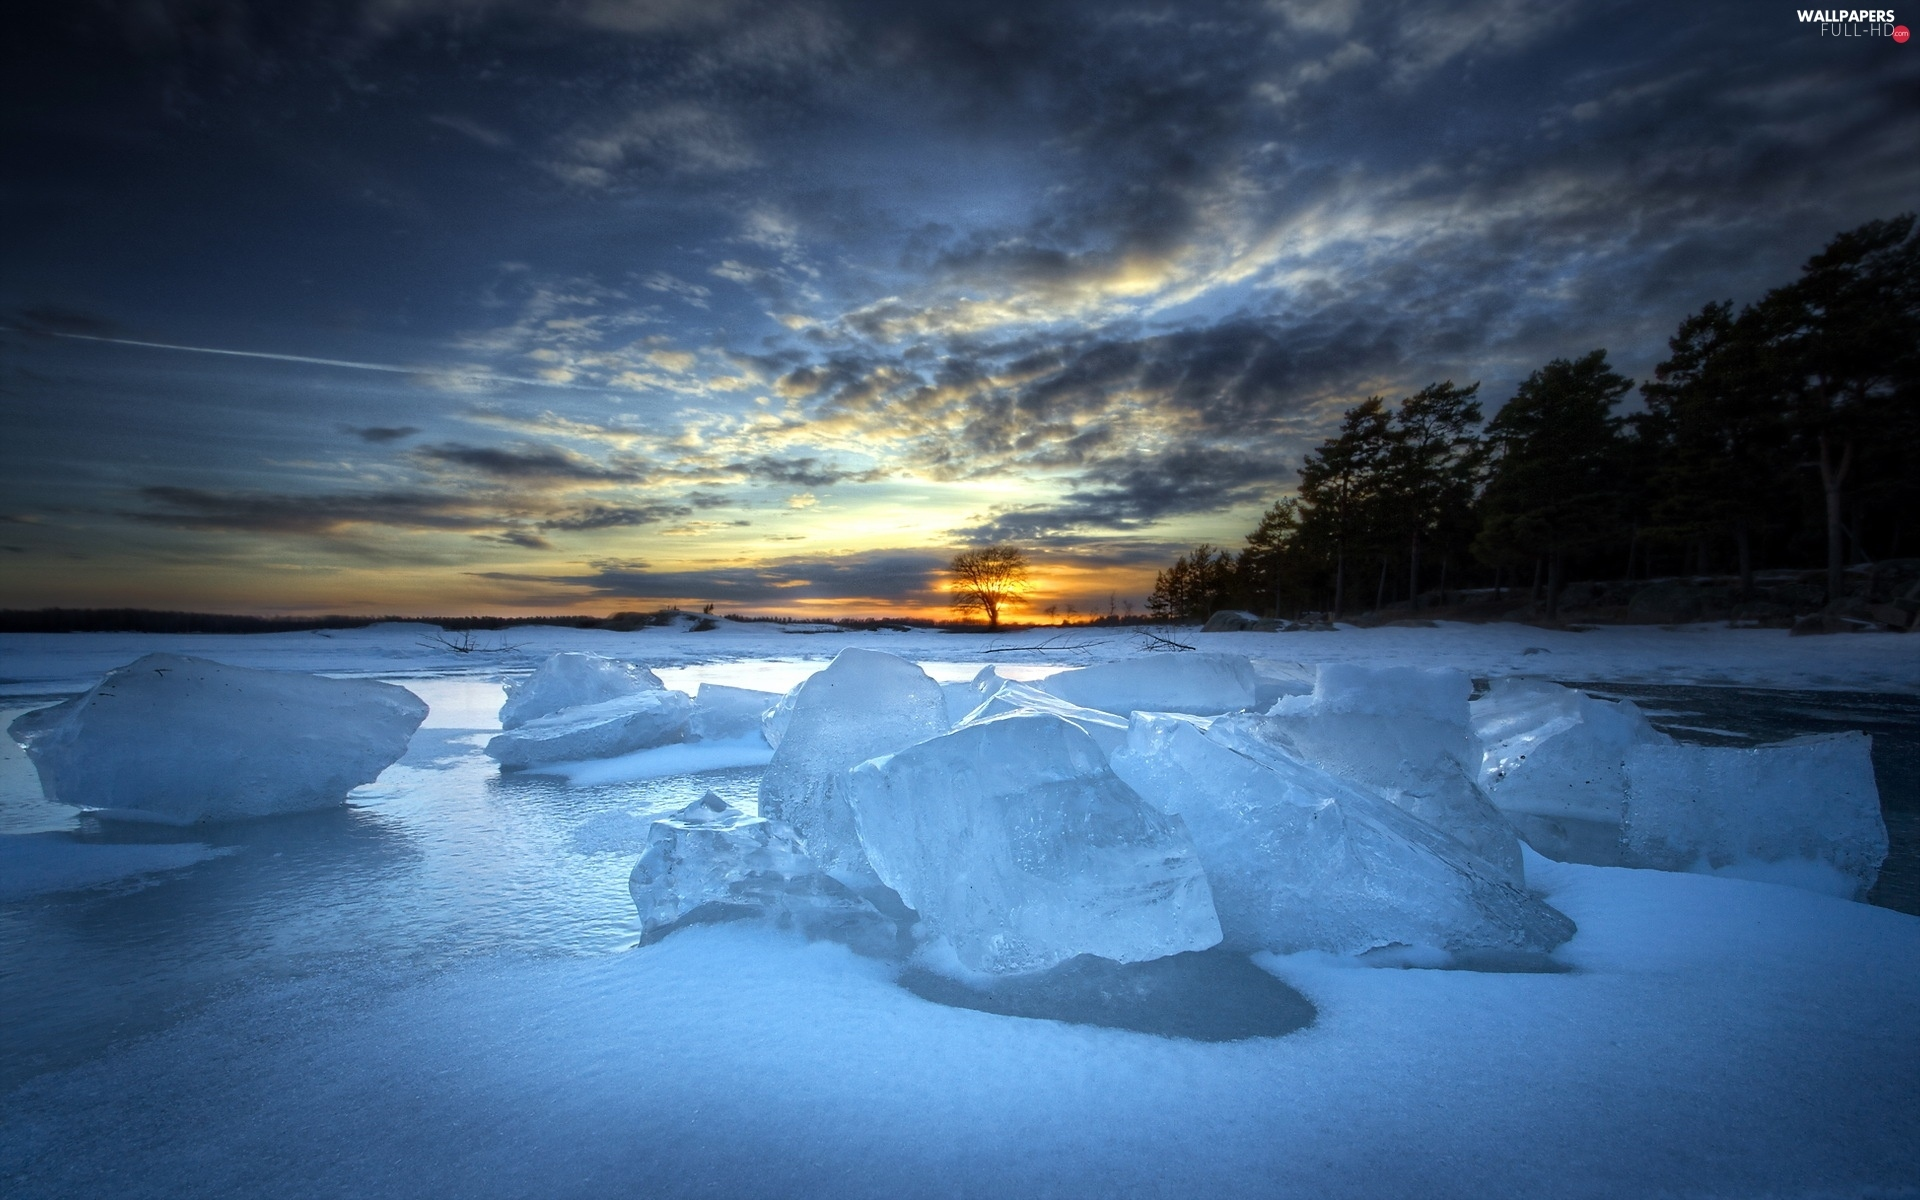 ice, forest, lumps, west, winter, sun